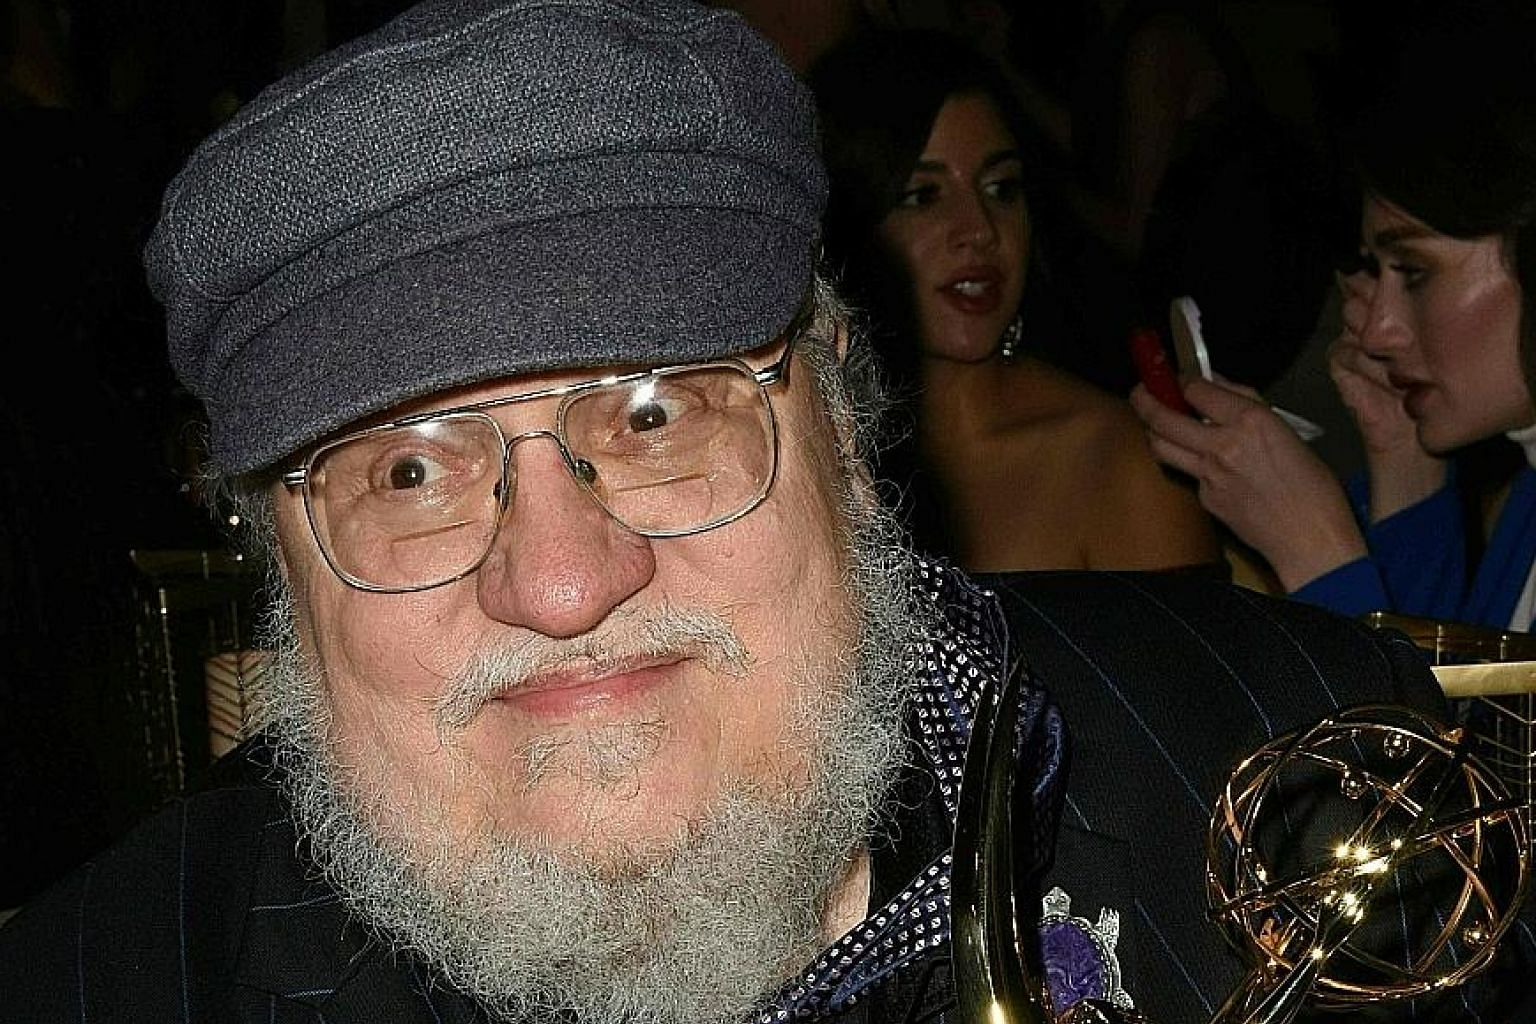 Novelist George R.R. Martin's A Song Of Ice And Fire series was adapted into HBO's Game Of Thrones.